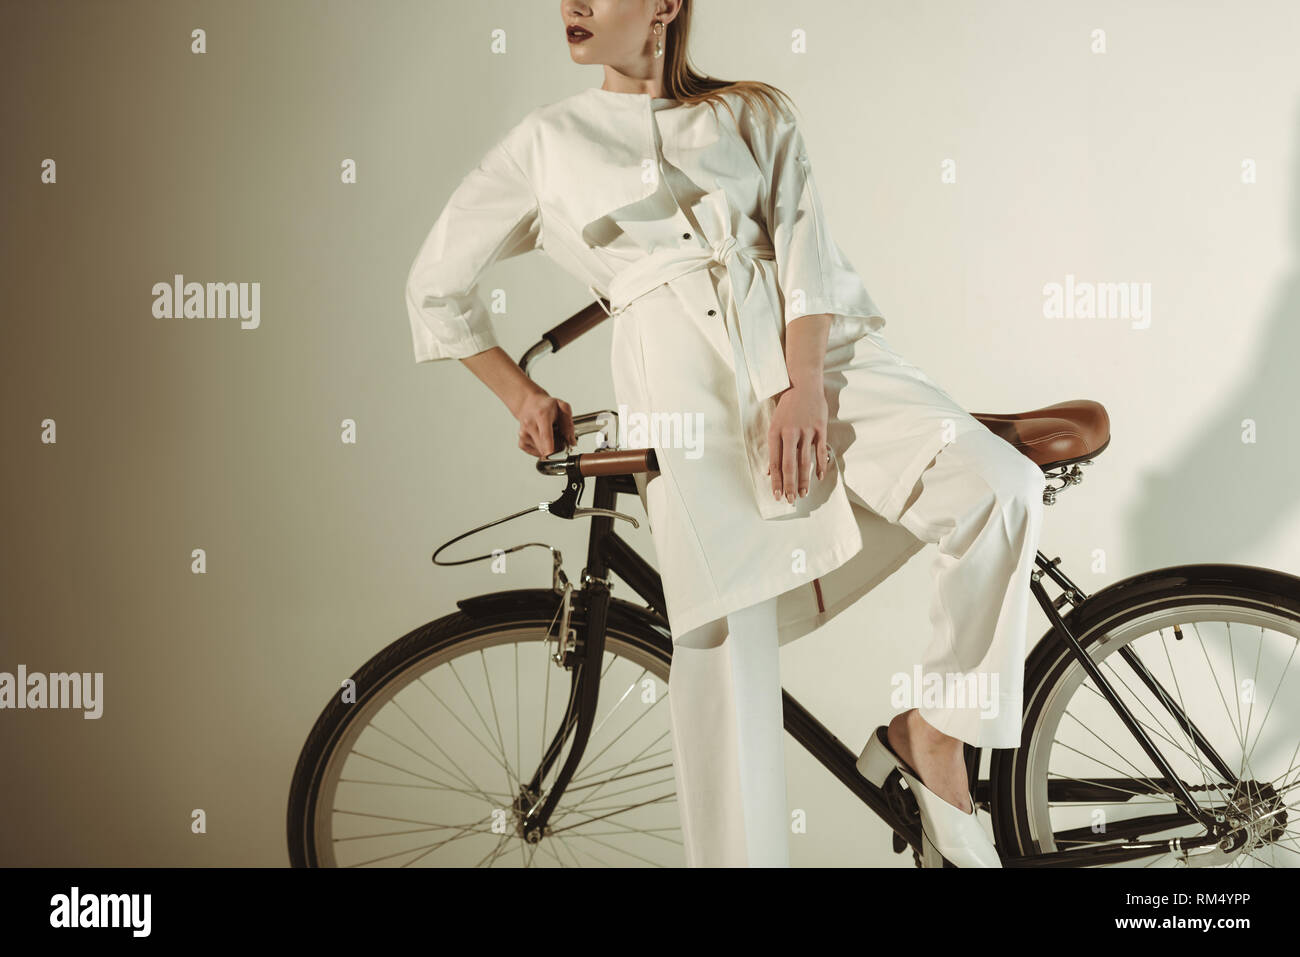 cropped view of stylish girl in white outfit posing on bicycle - Stock Image